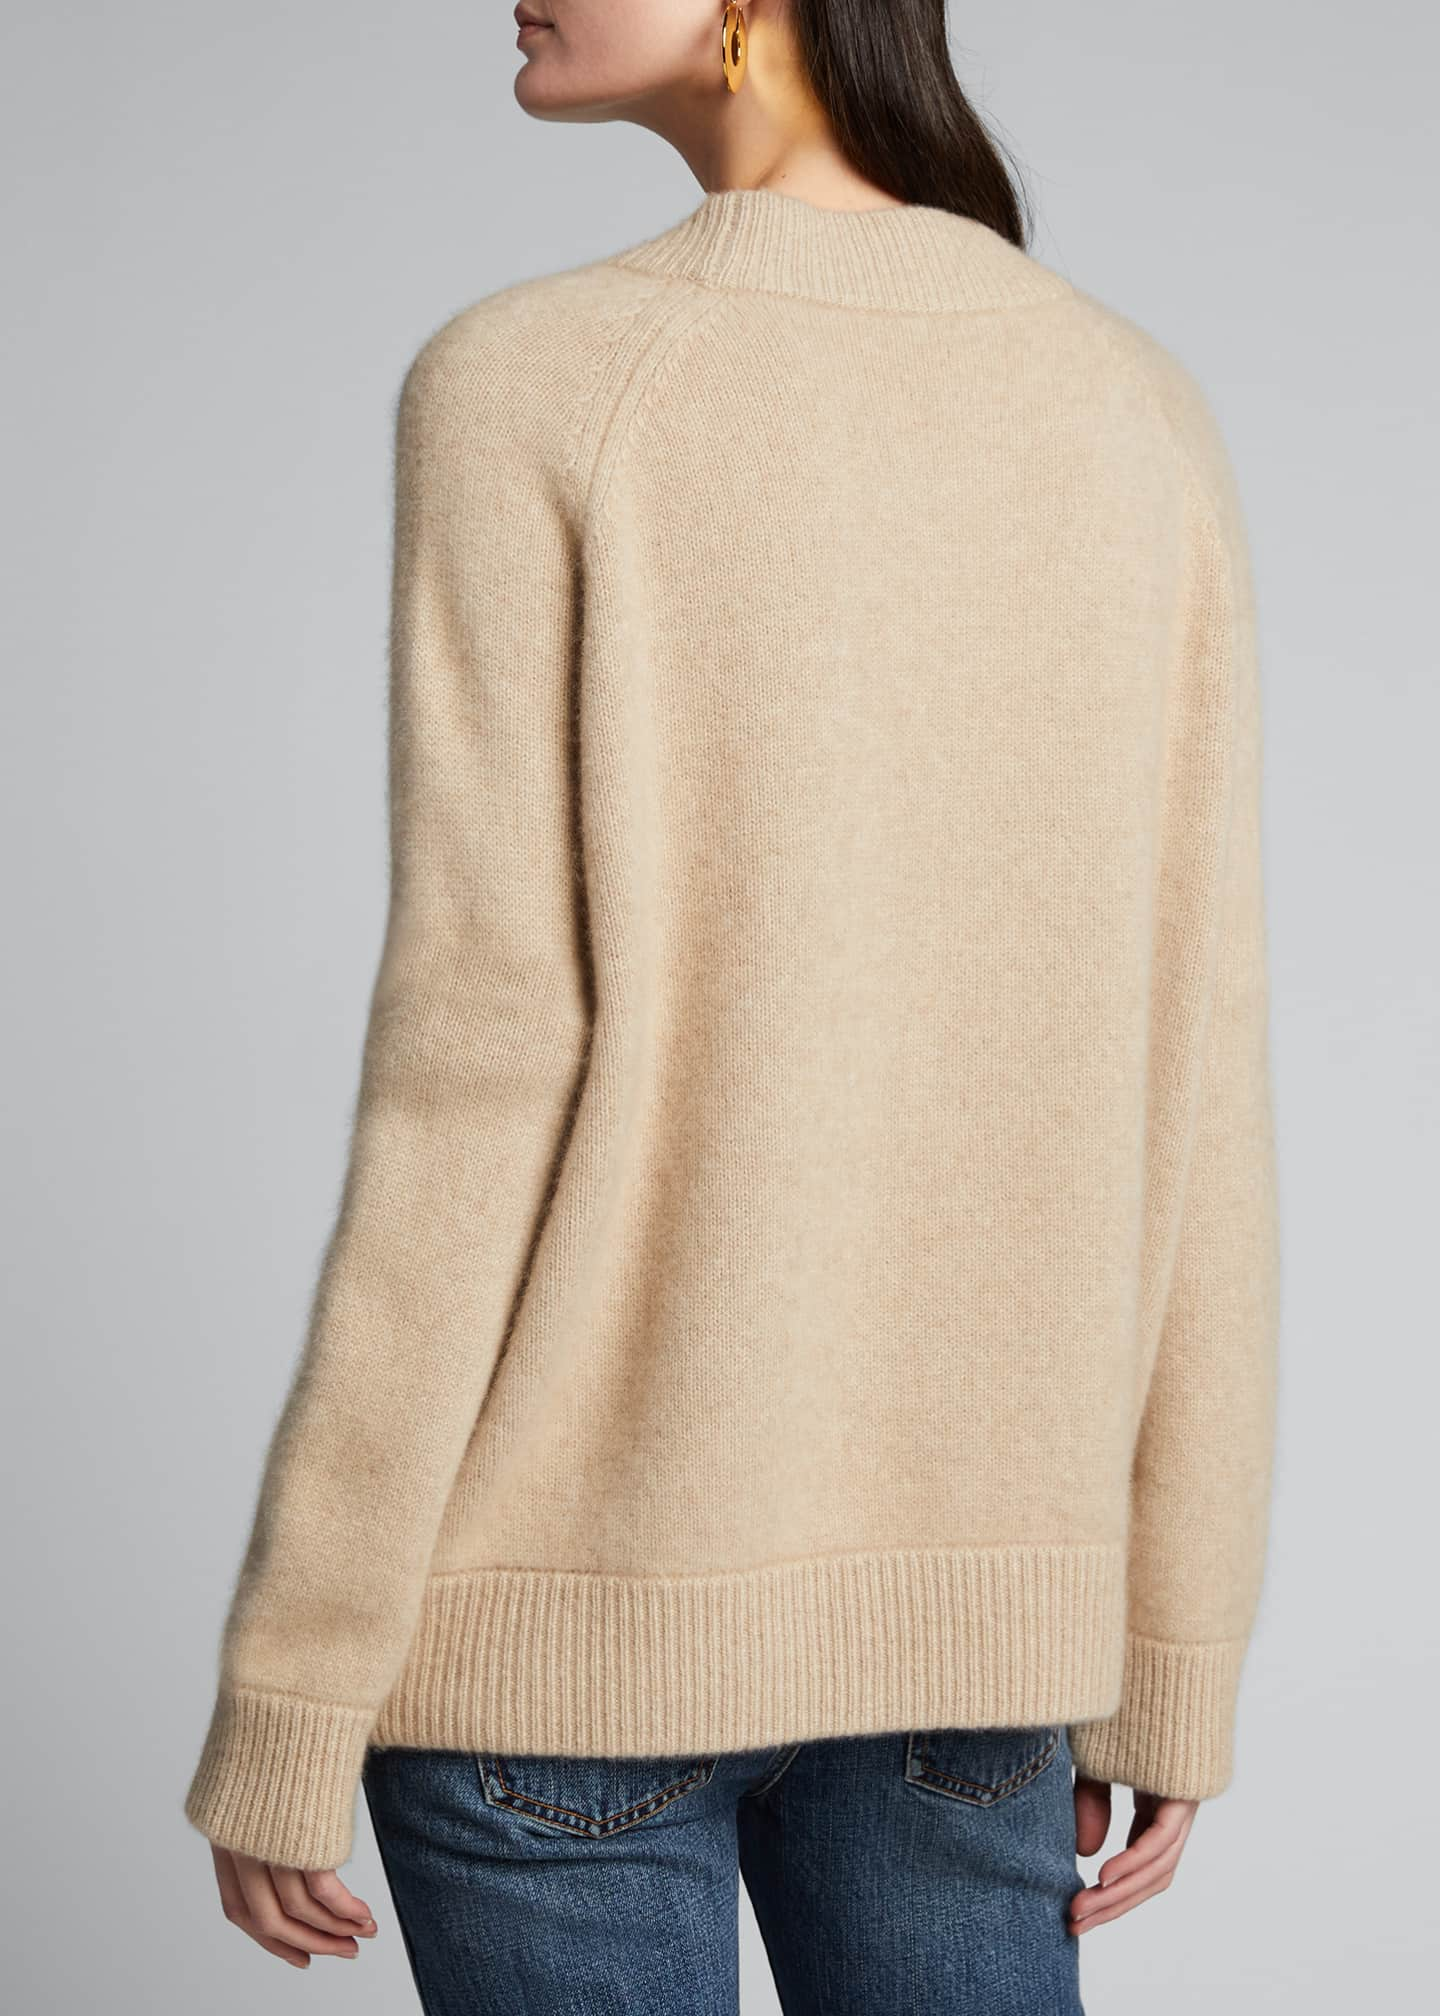 Image 2 of 5: Cashmere Cropped Cardigan